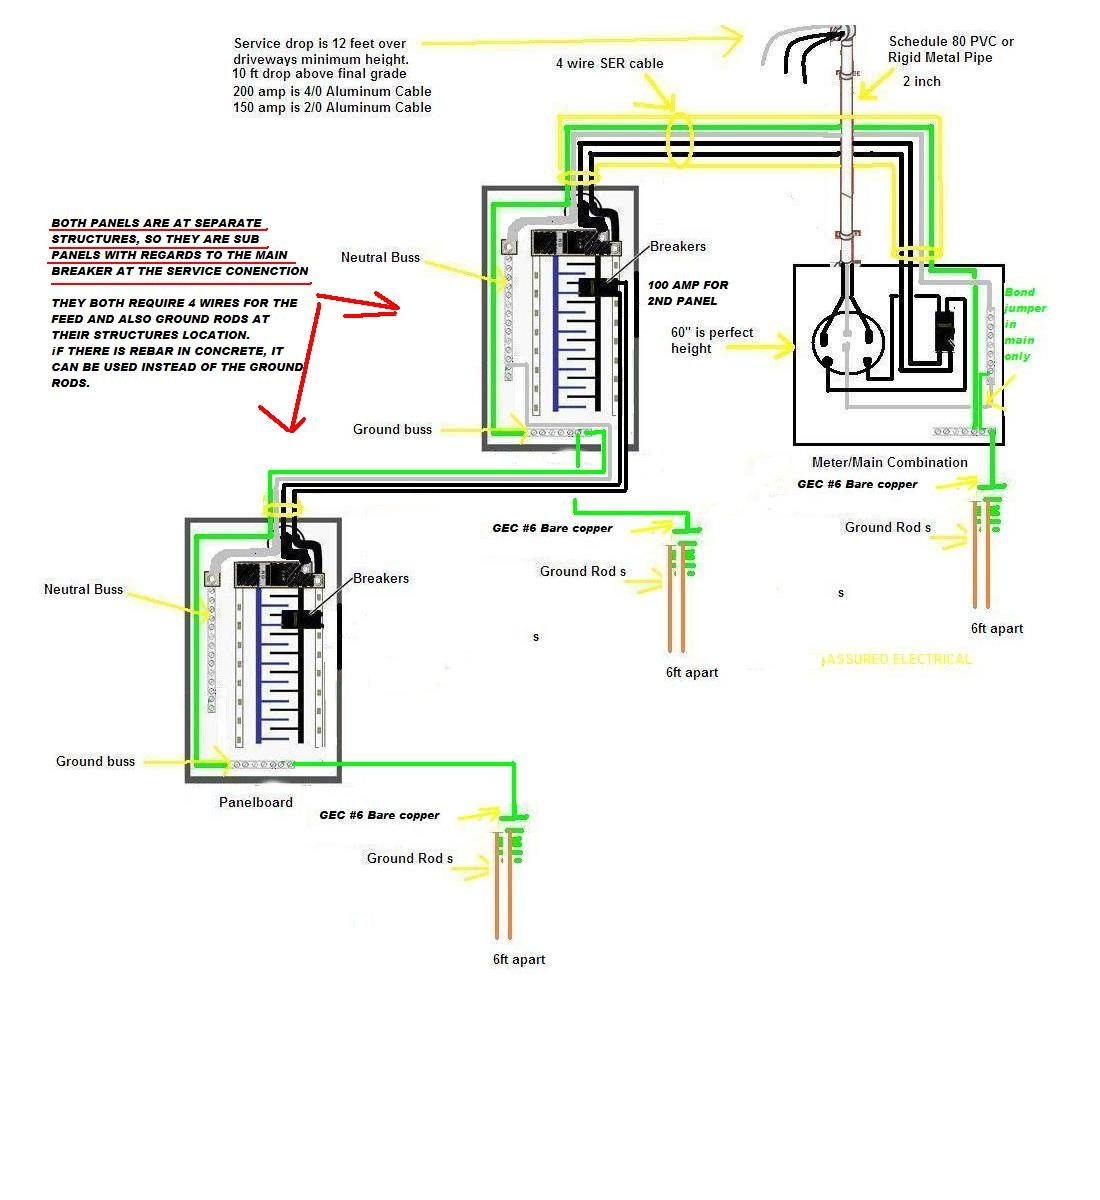 400 amp meter base wiring diagram   33 wiring diagram